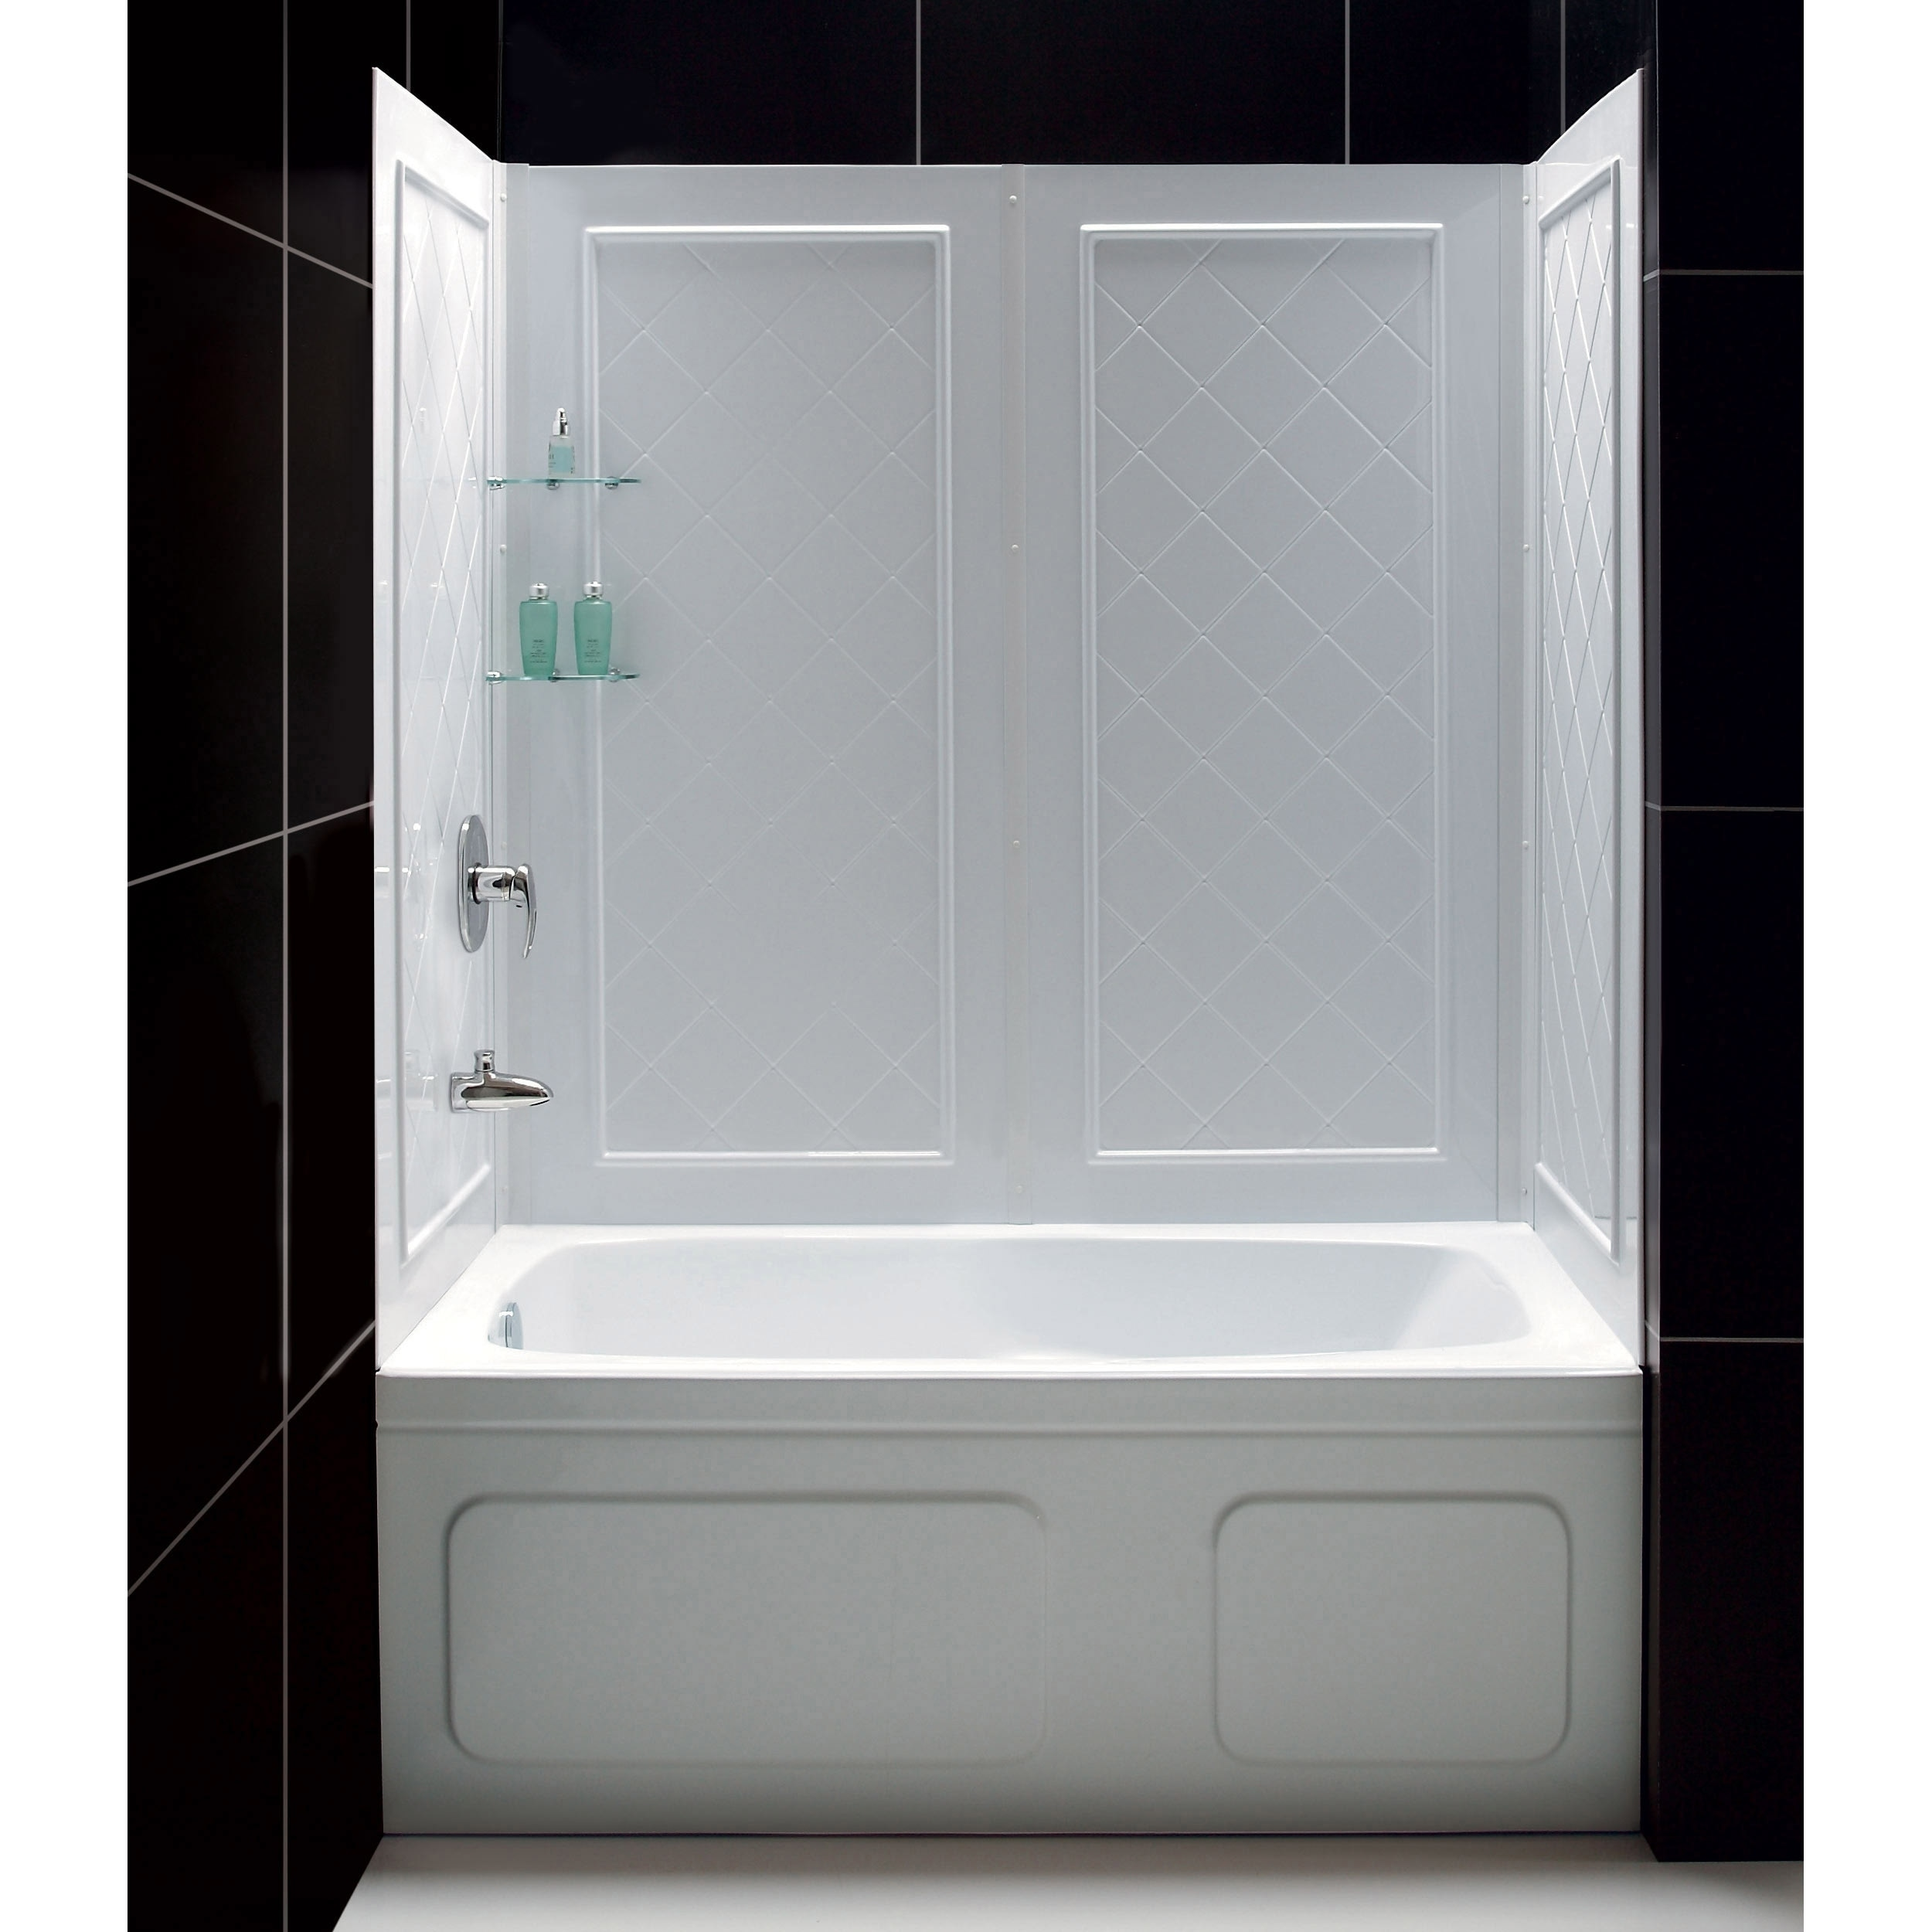 Shop DreamLine QWALL-Tub 56-60 in. W x 28-32 in. D x 60 in. H ...